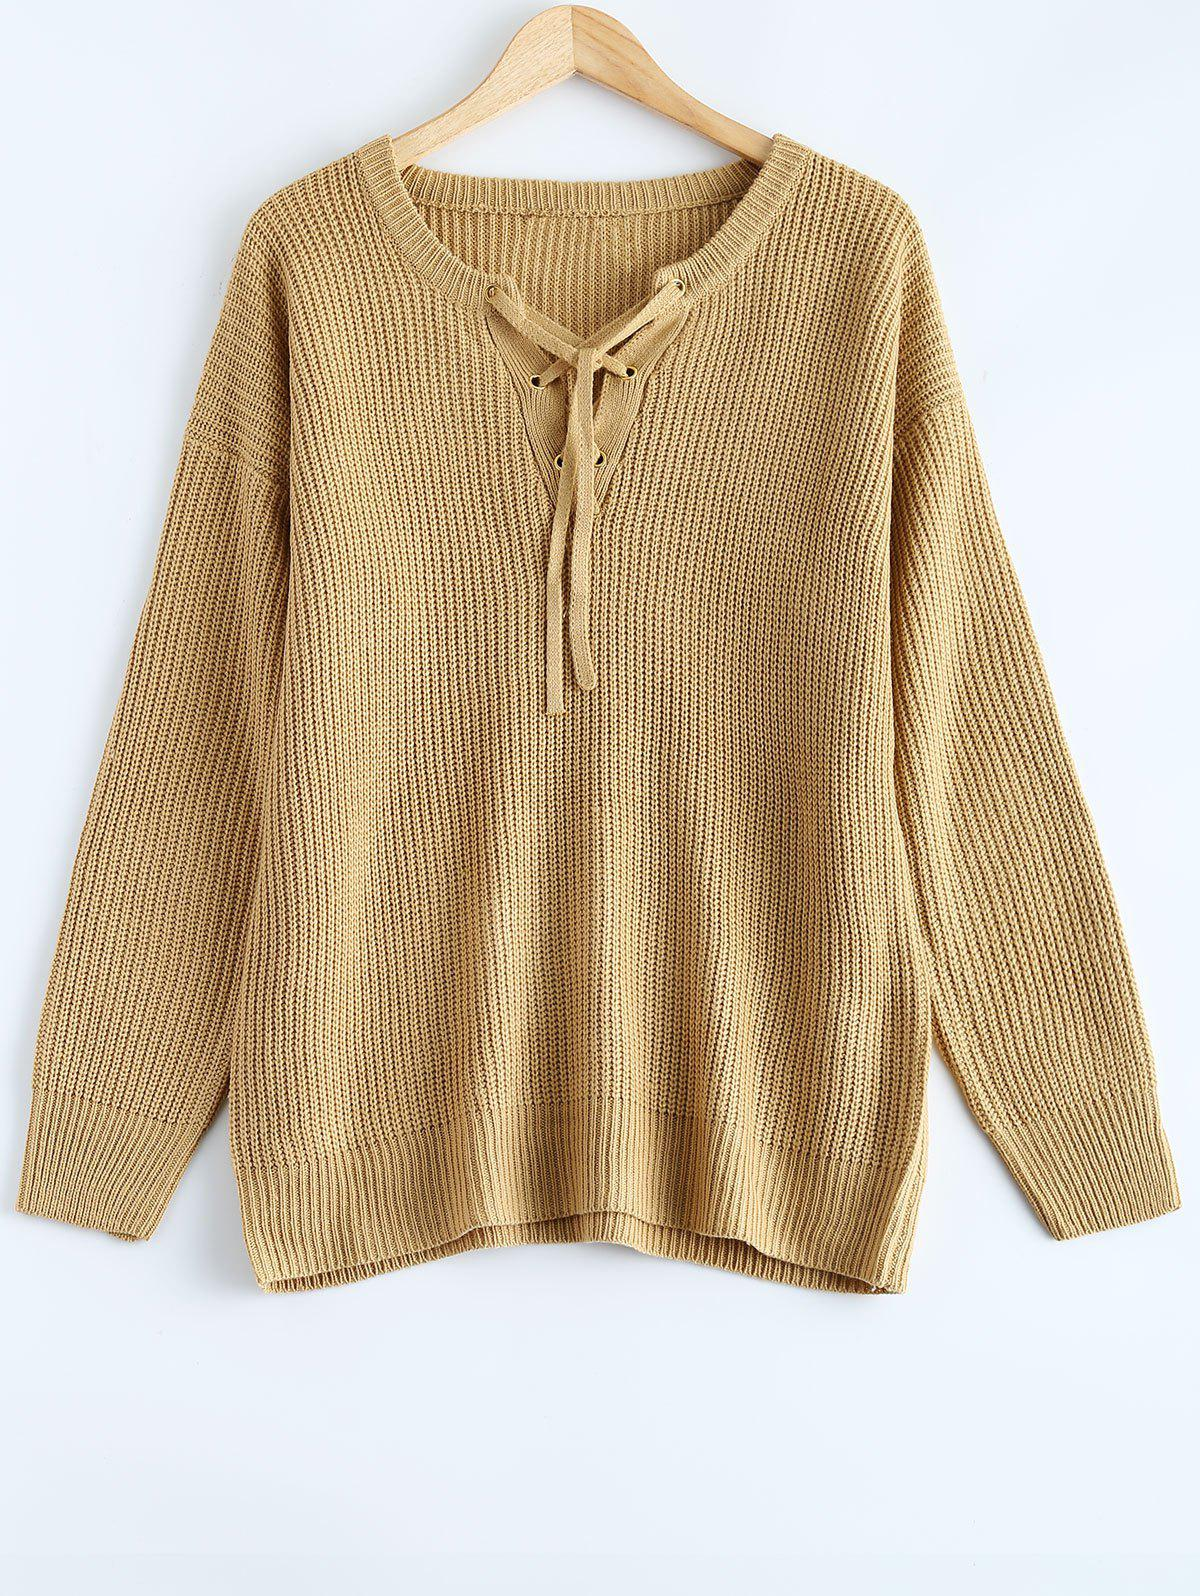 Lace Up Pullover Plus Size Sweater bear patched plus size pullover sweater